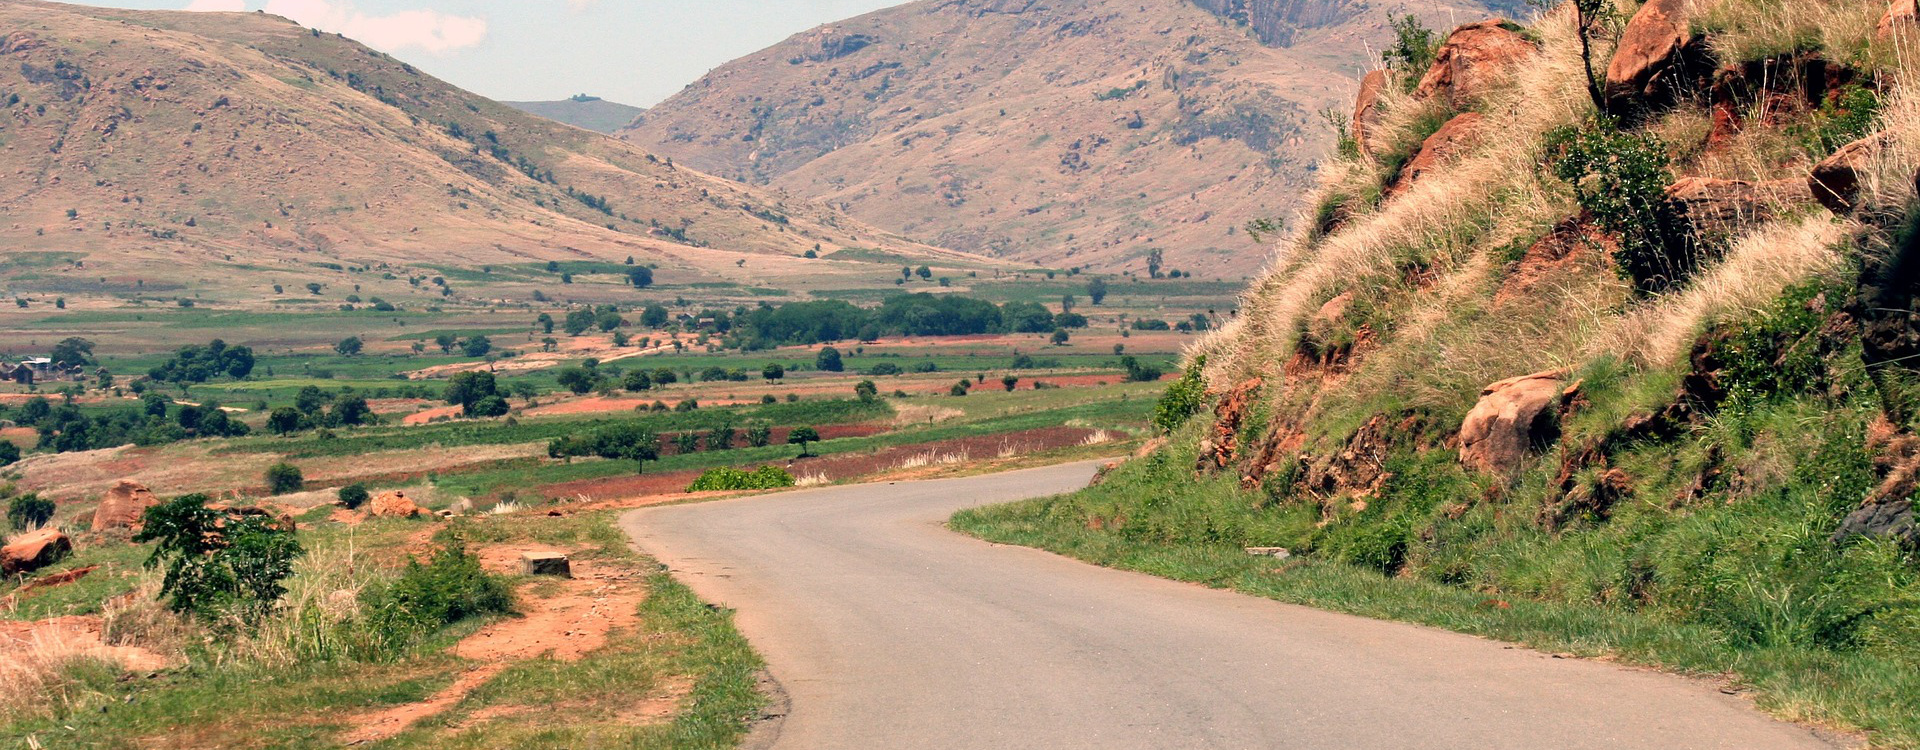 madagascar-route-road